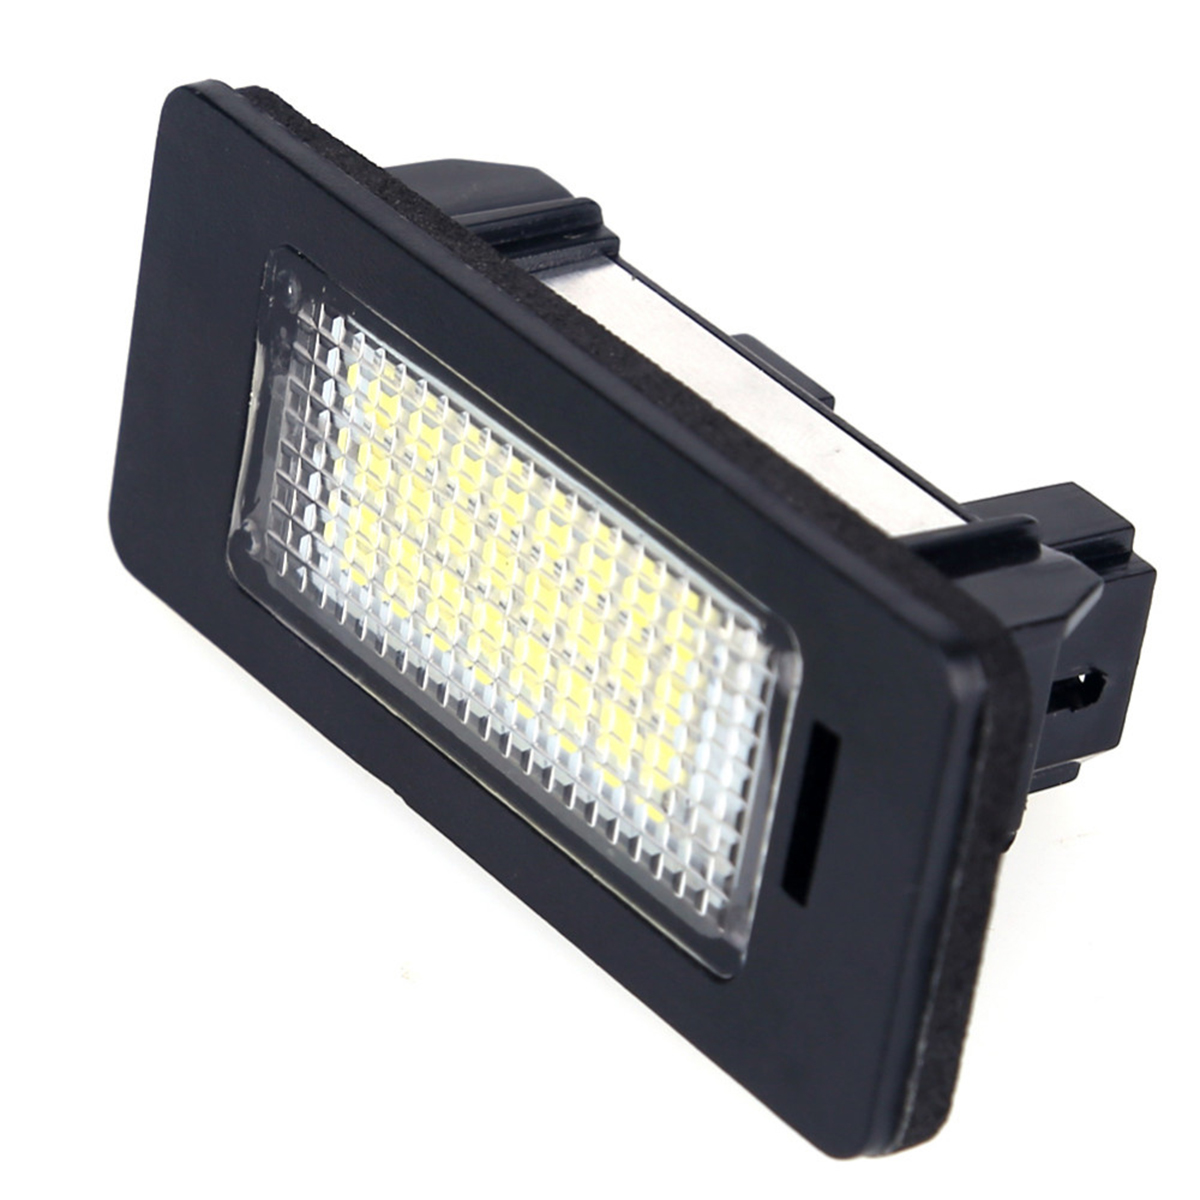 2Pcs 6000K Bright Xenon White Number License Plate Light SMD LED Lamps For BMW E39 E70 E71 X5 X6 E60 M5 E90 E92 E93 M3 image